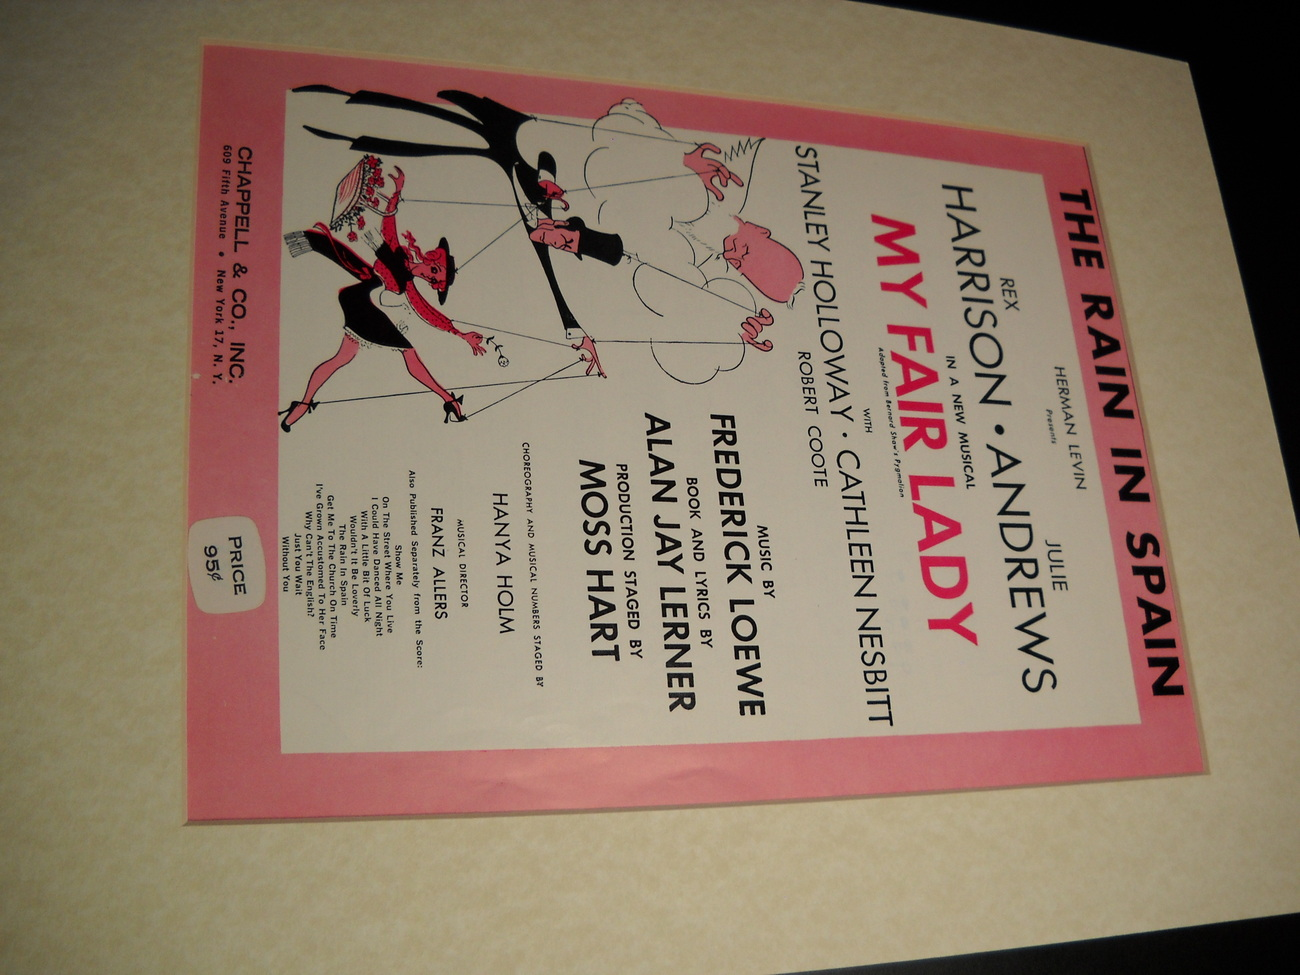 Sheet_music_the_rain_in_spain_my_fair_lady_harrison_andrews_1956_chappell__09